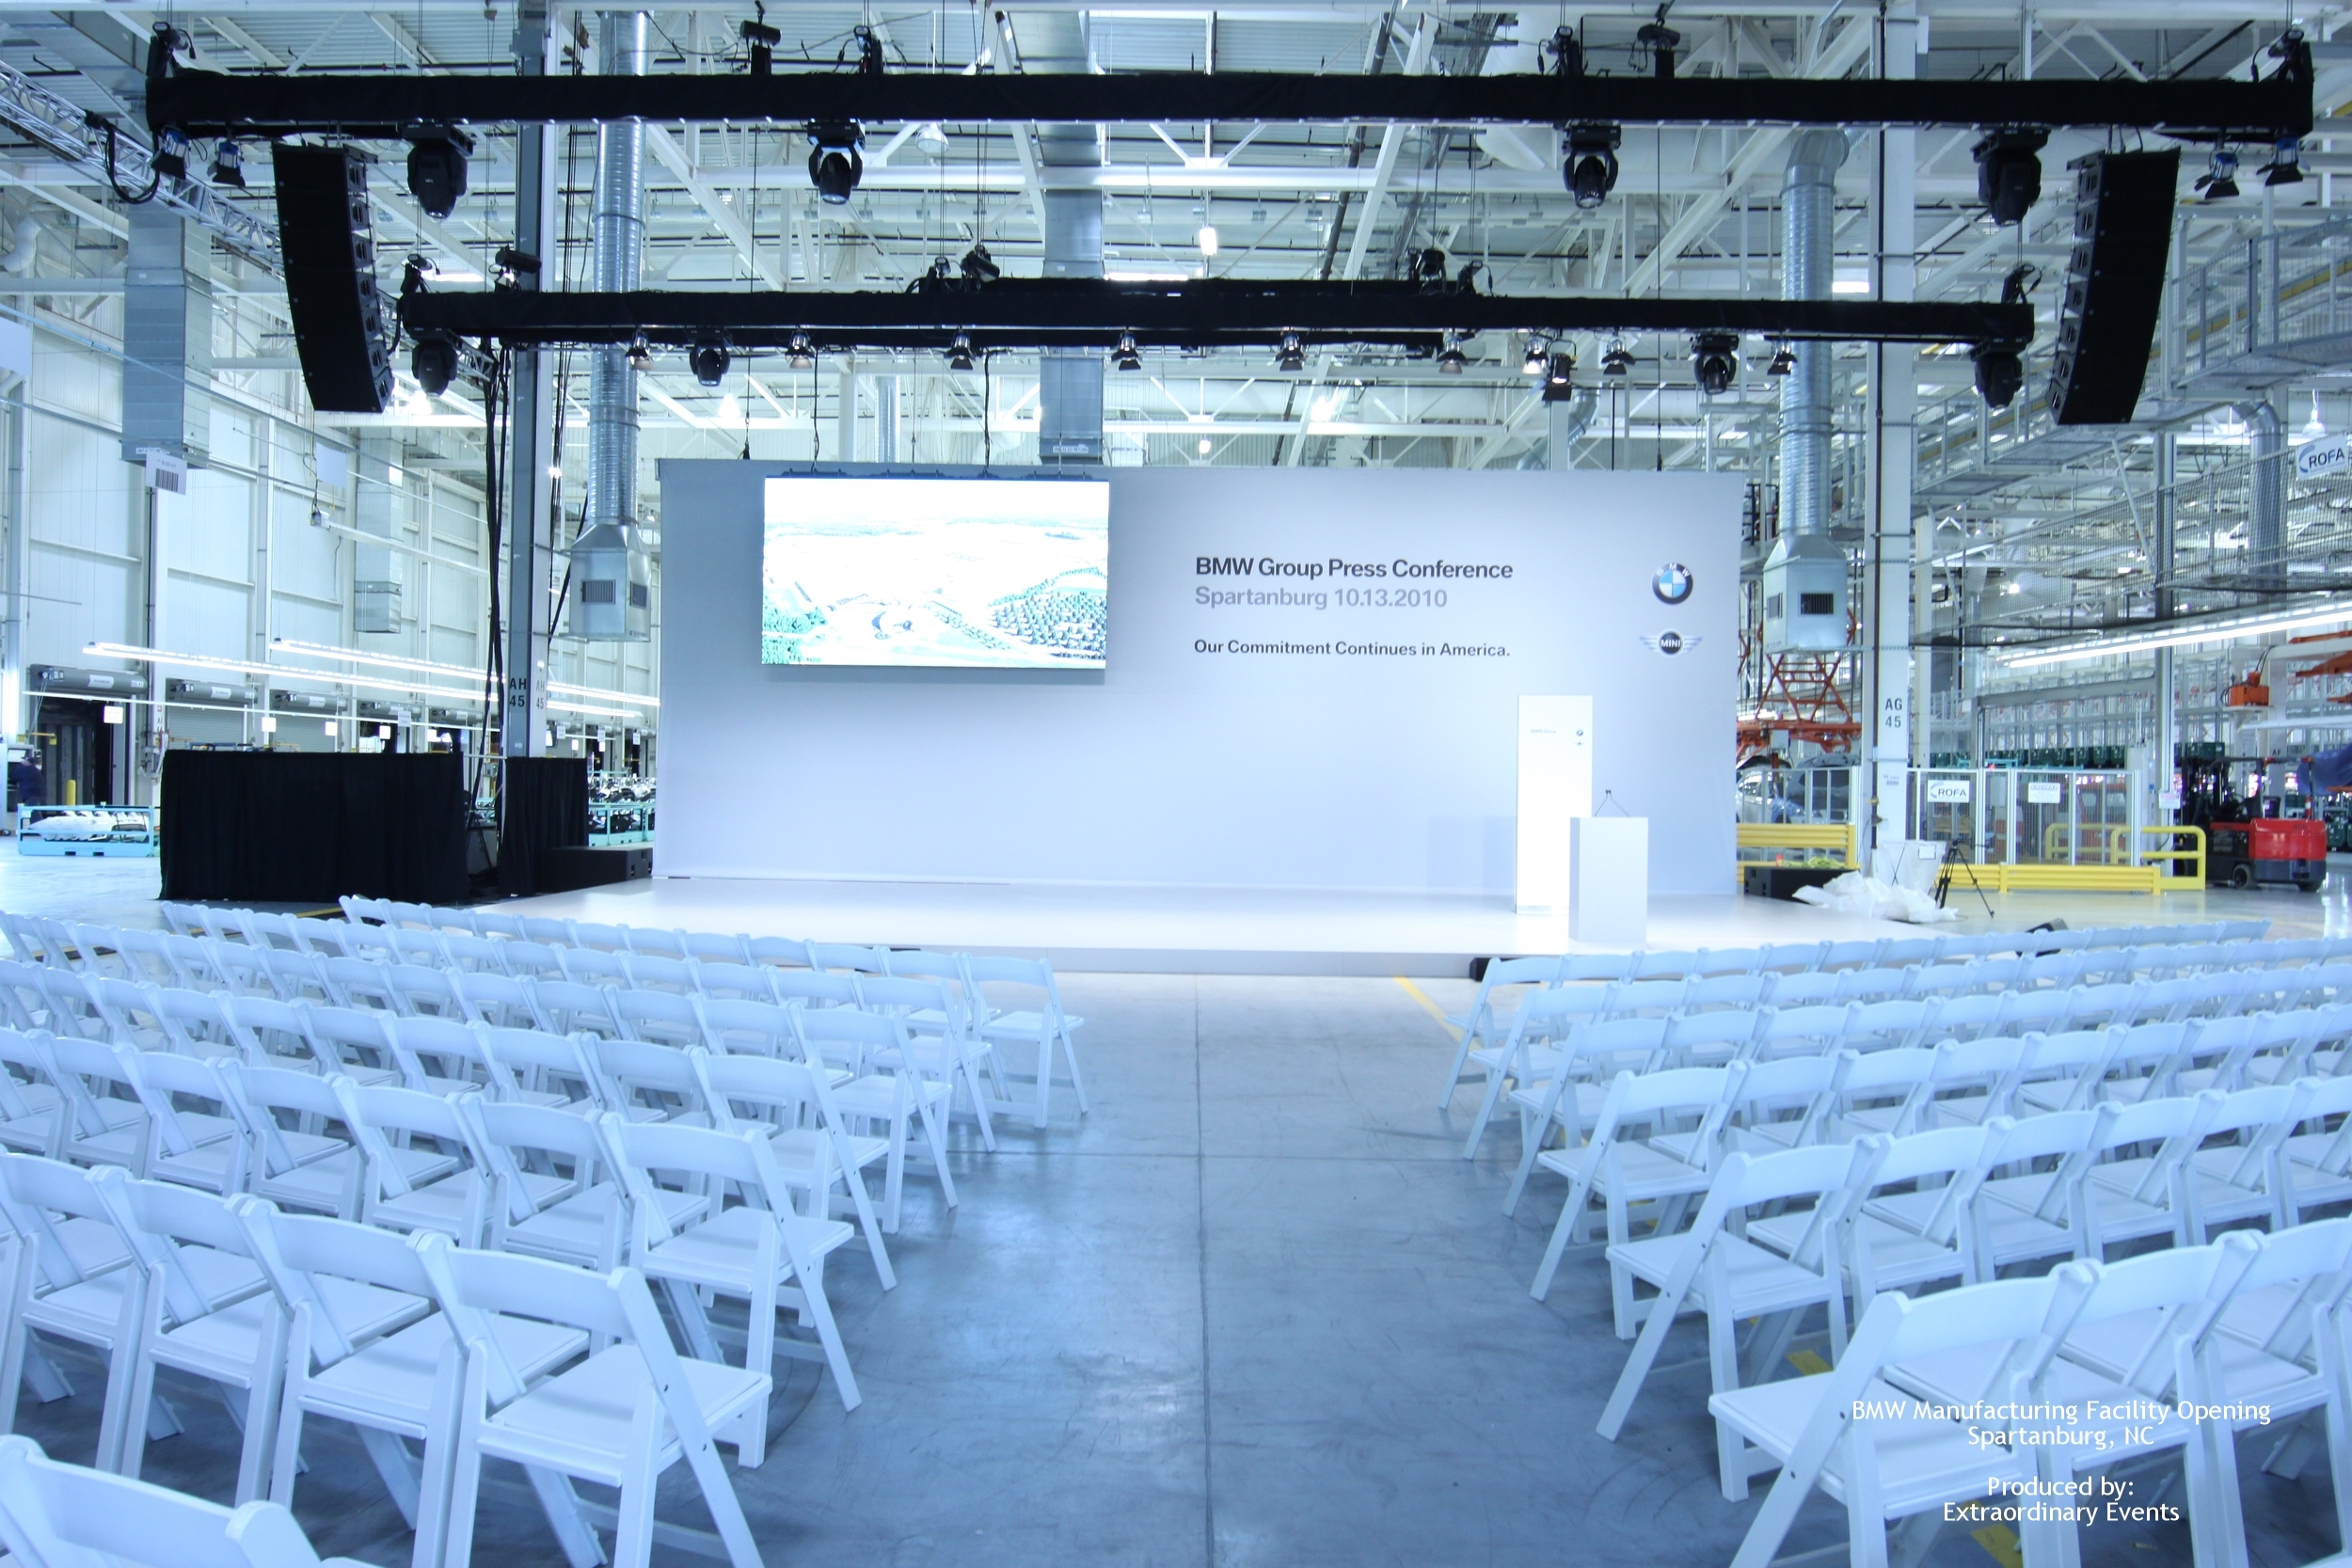 BMW Manufacturing Facility Opening Produced by: Extraordinary Events